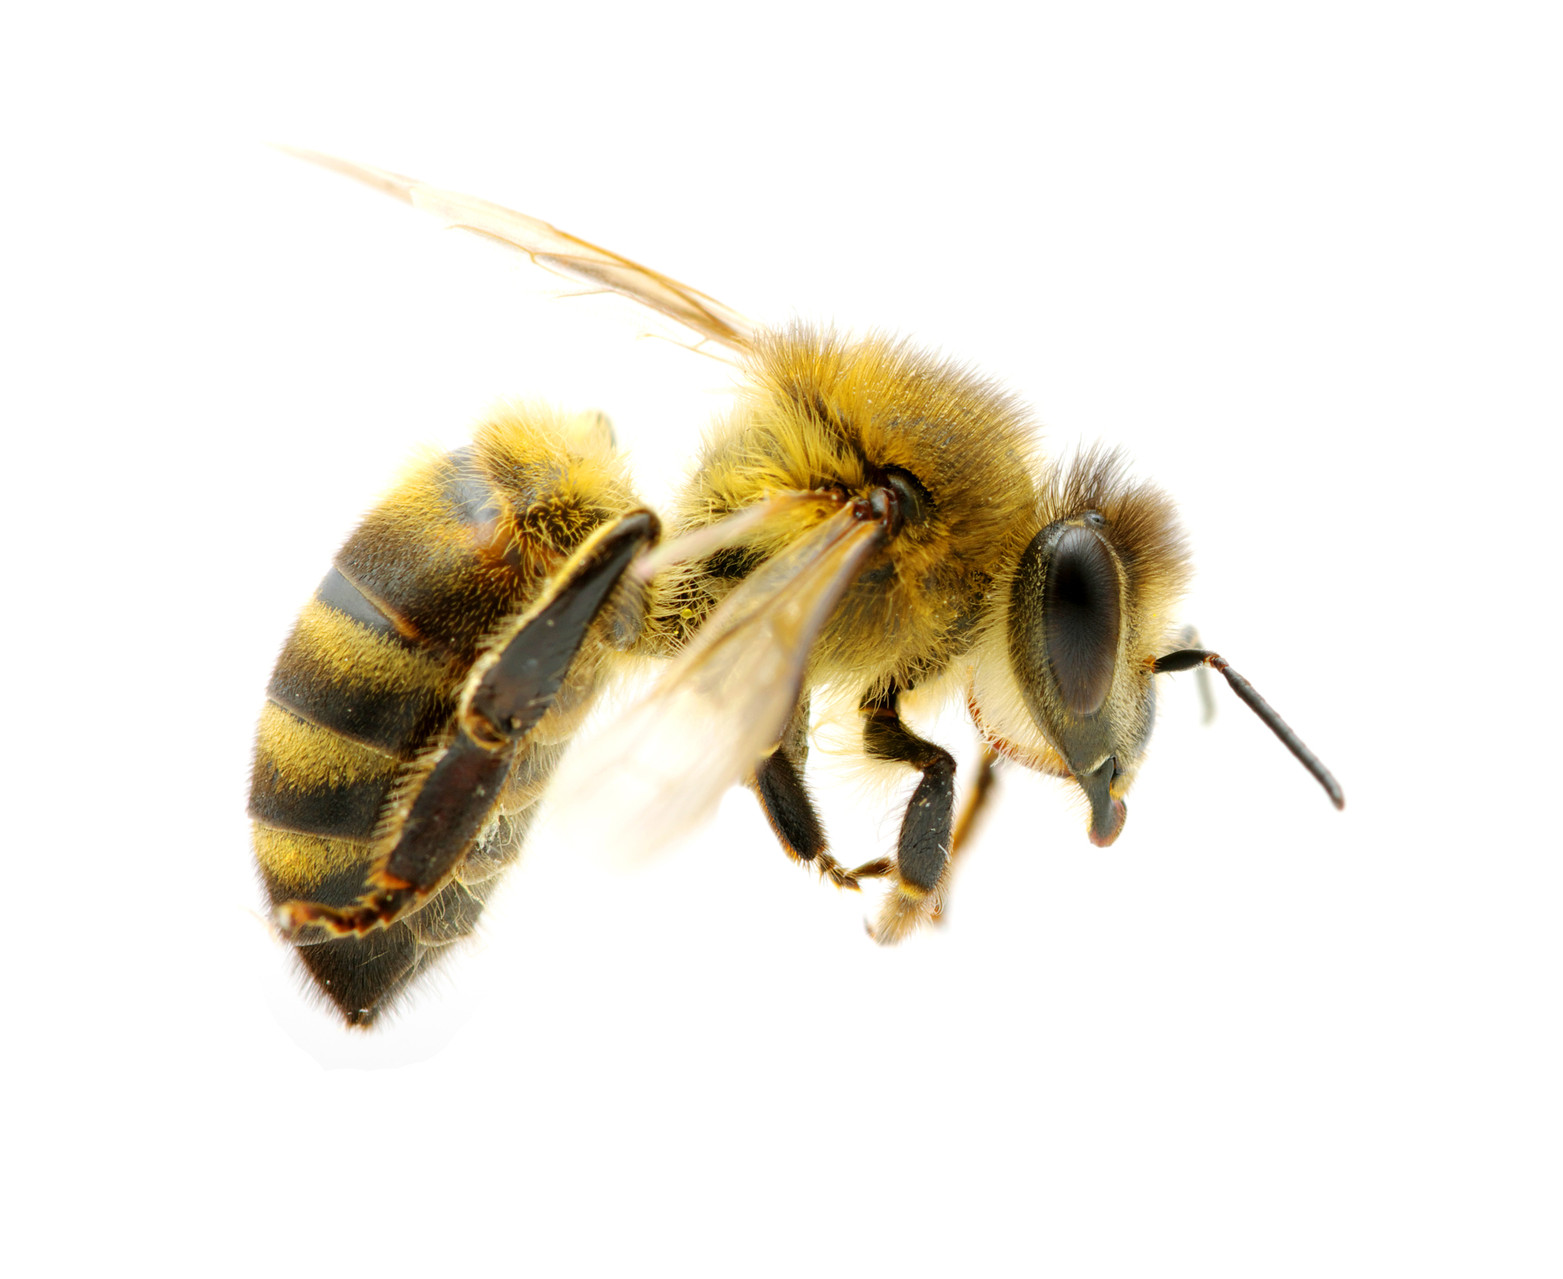 Scratchy, Sore Throat? The Bees Have a Solution - Natural ...